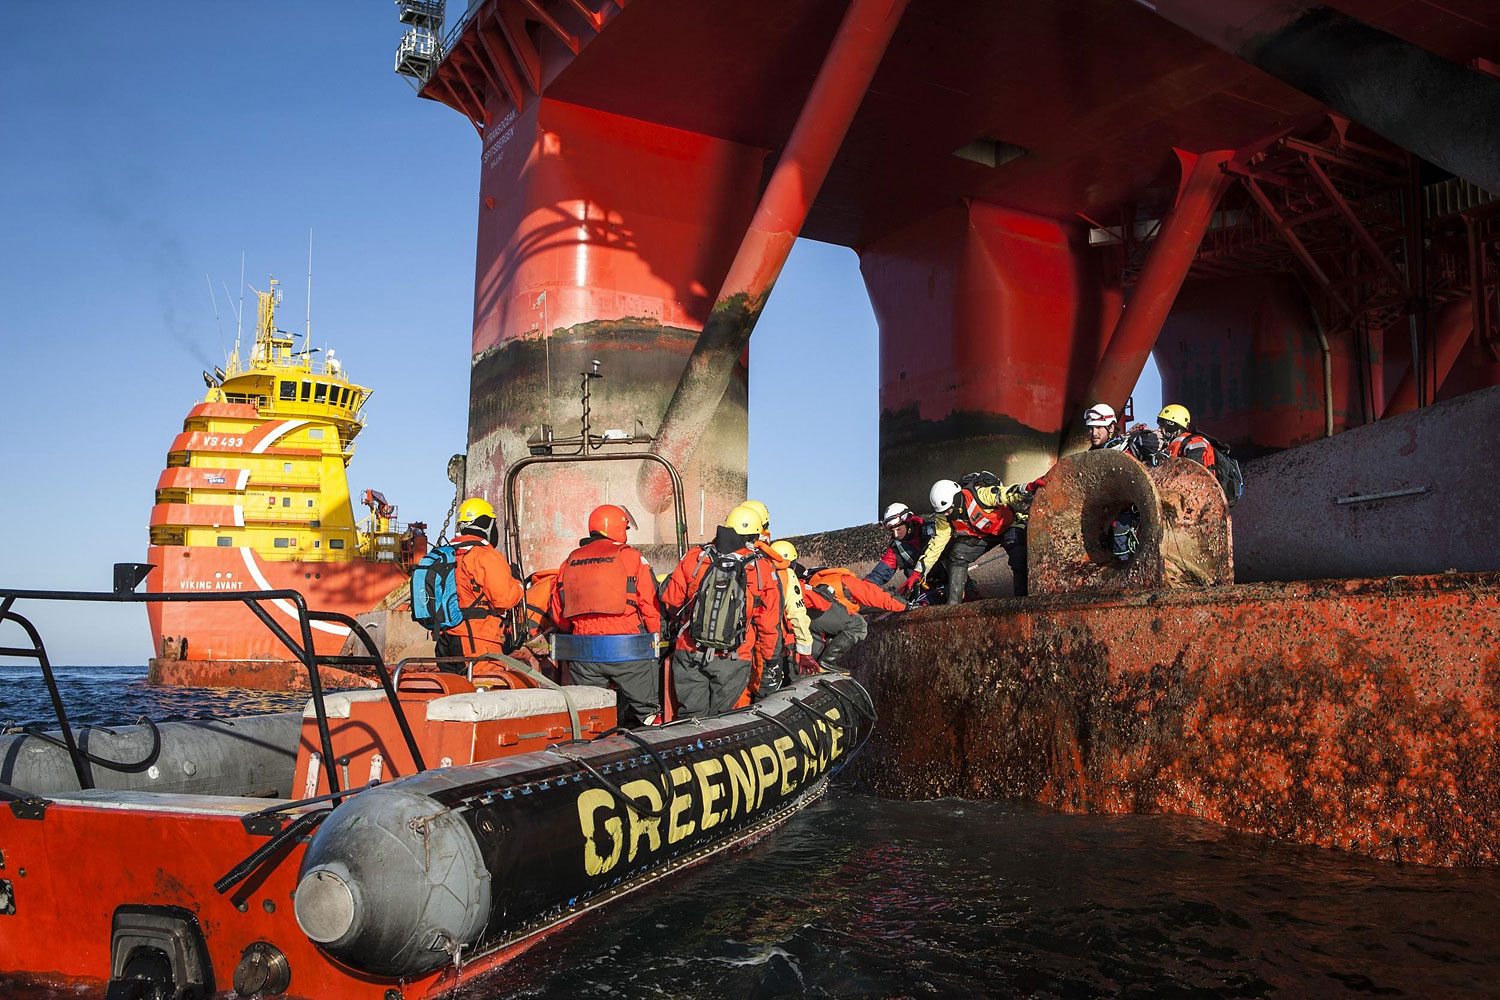 Greenpeace International activists from eight countries scale and occupy Statoil contracted oil rig Transocean Spitsbergen on May 27, 2014 to protest the company's plans to drill the northernmost well in the Norwegian Arctic at the Apollo Prospect of the Barents Sea, close to the Bear Island nature reserve.